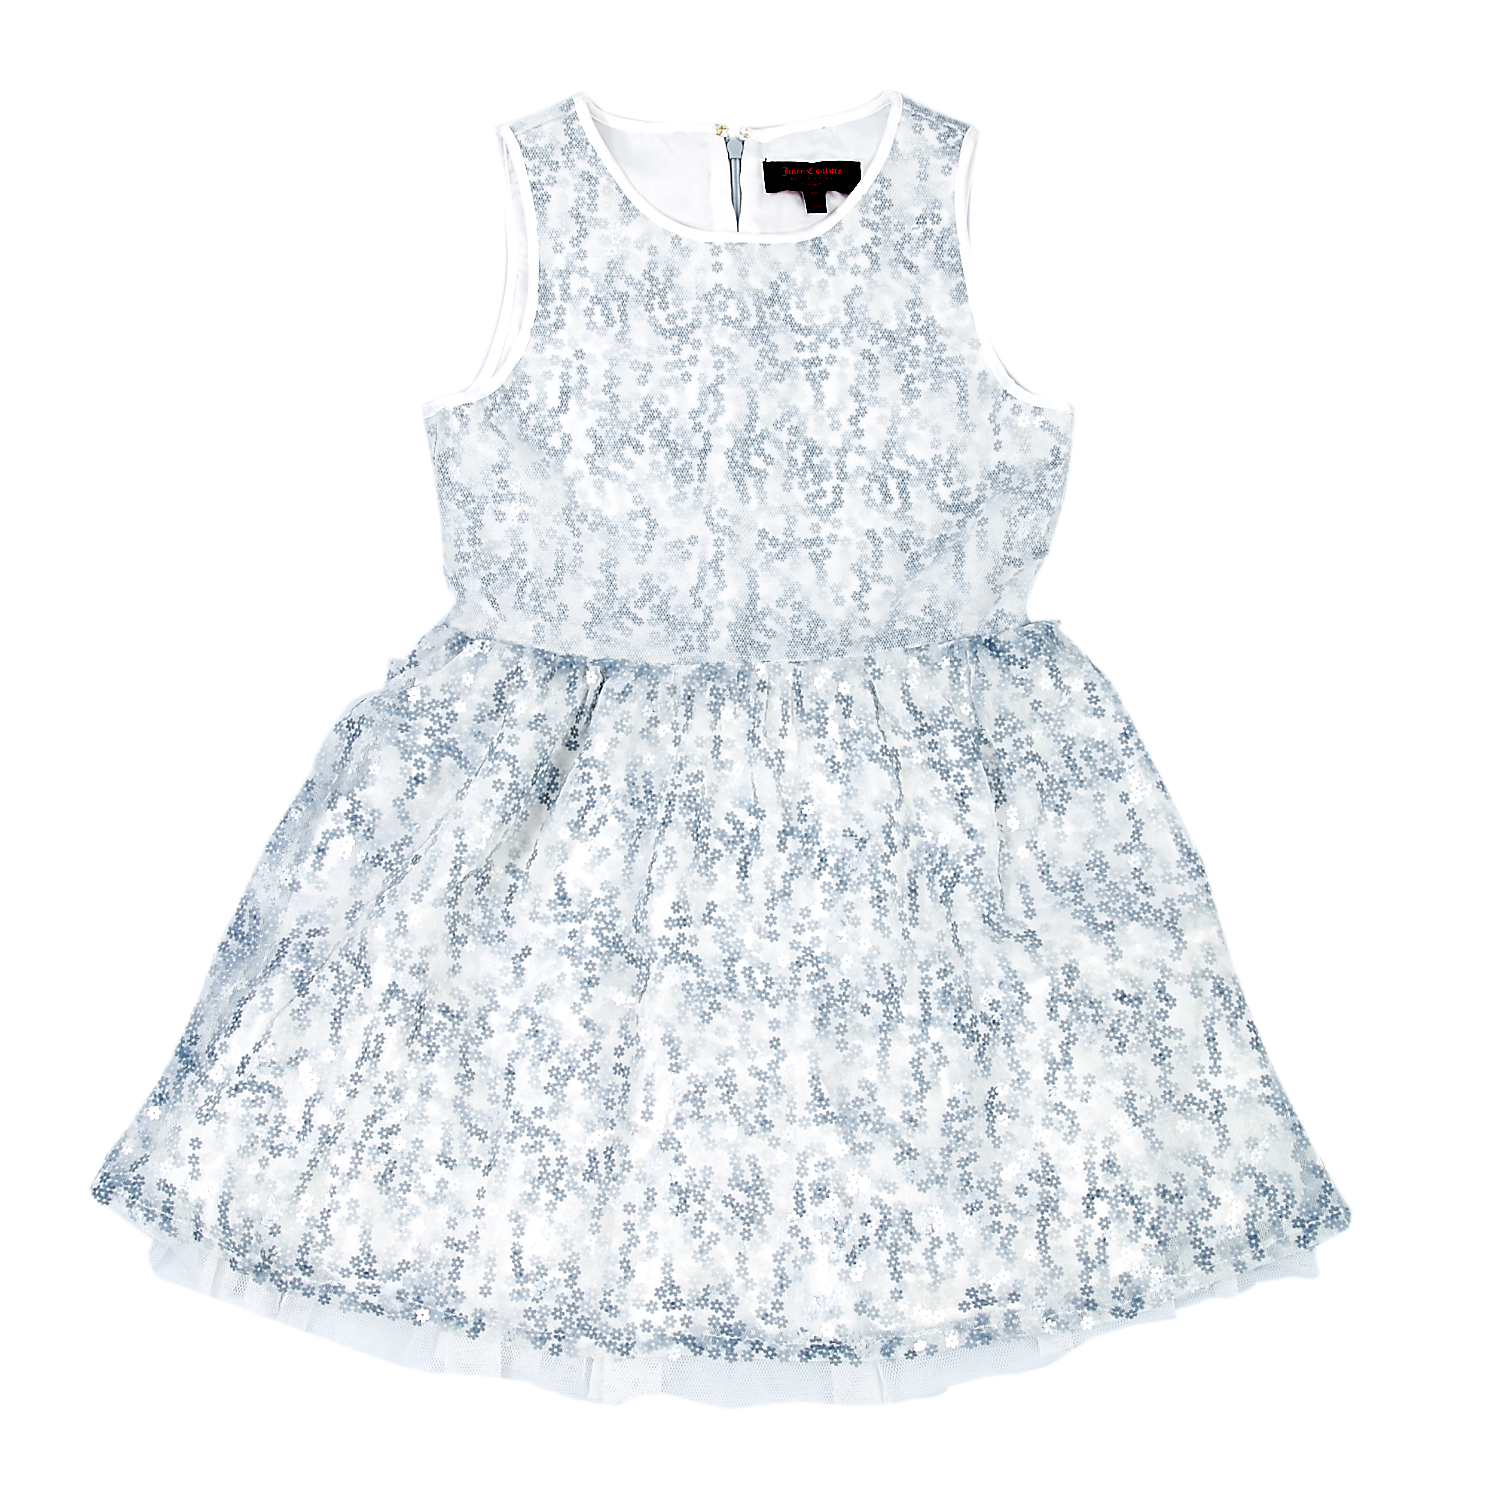 JUICY COUTURE KIDS - Παιδικό φόρεμα Juicy Couture μπλε-λευκό 0ac5be21ae3